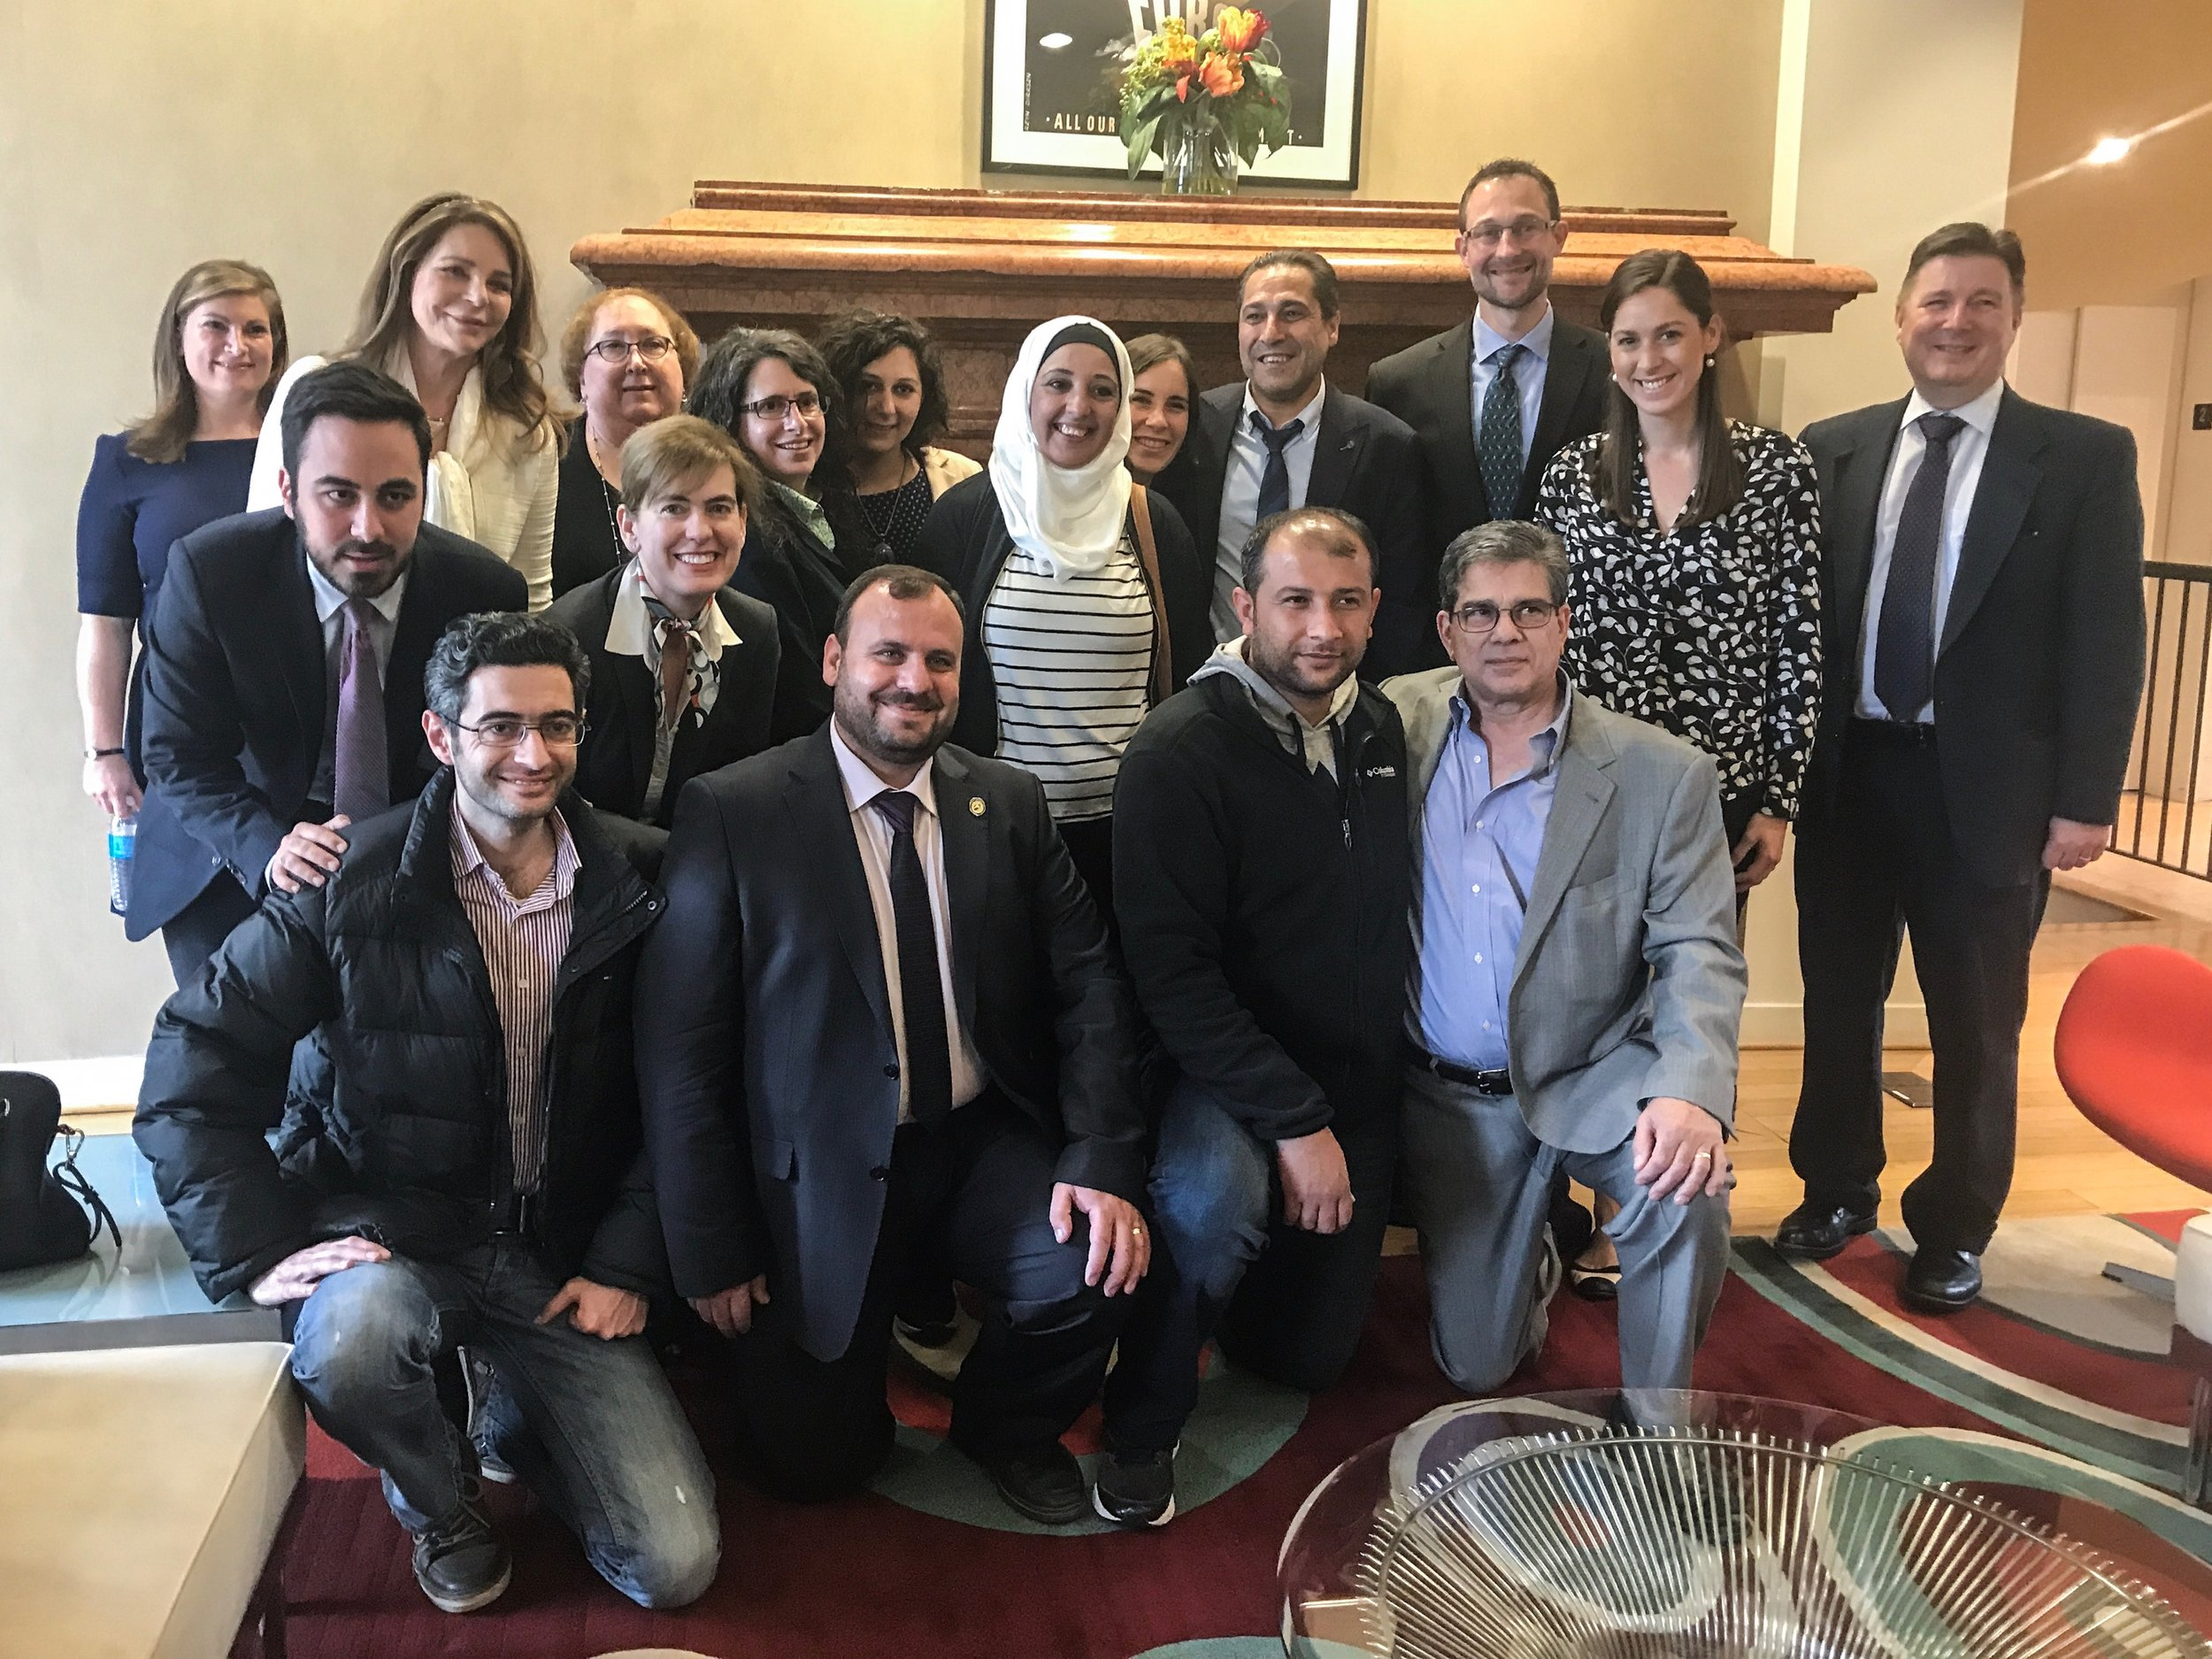 RI Staff and Board Member Queen Noor-Al Hussein with the White Helmets and staff of the Syria Campaign.